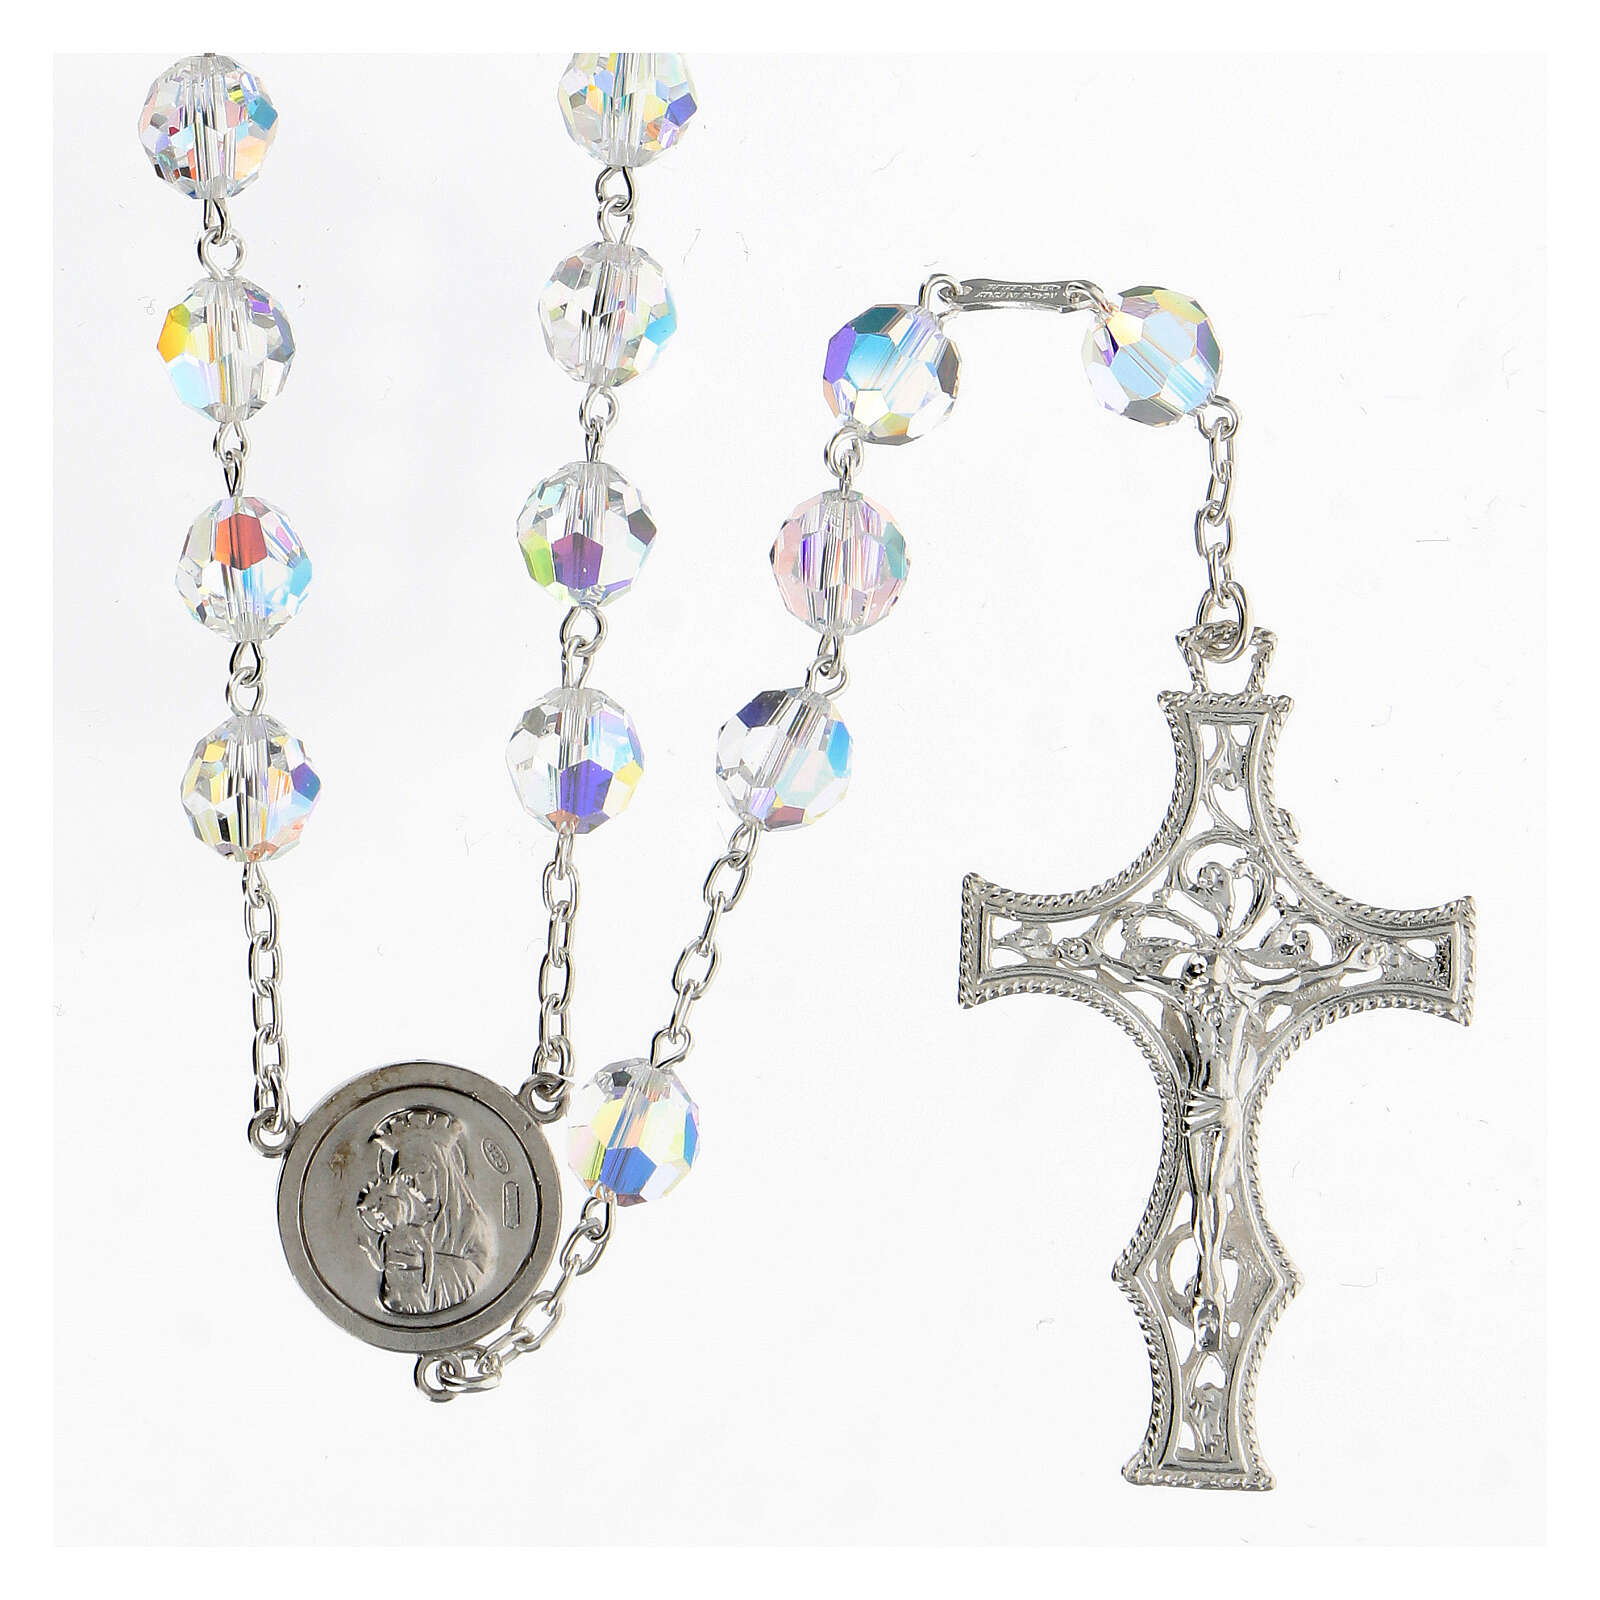 925 Silver rosary beads with Swarovski crystals measuring 8mm 4